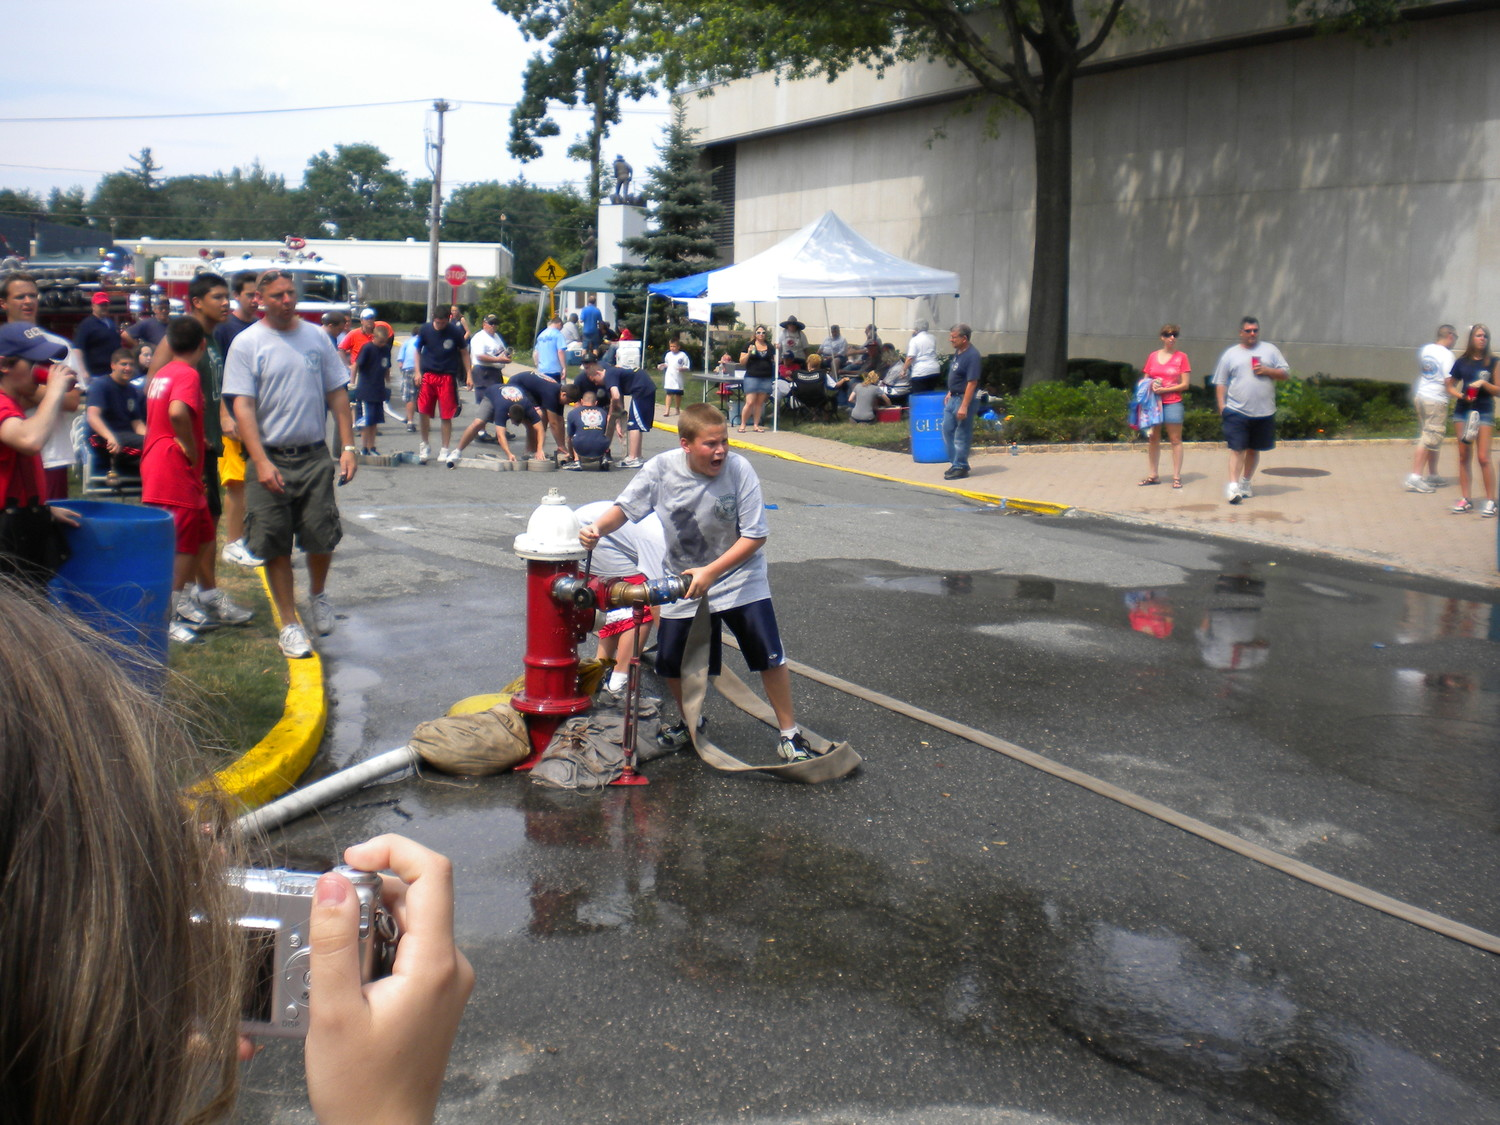 A Glen Cove Explorer competed in a hydrant-tapping race several years ago.